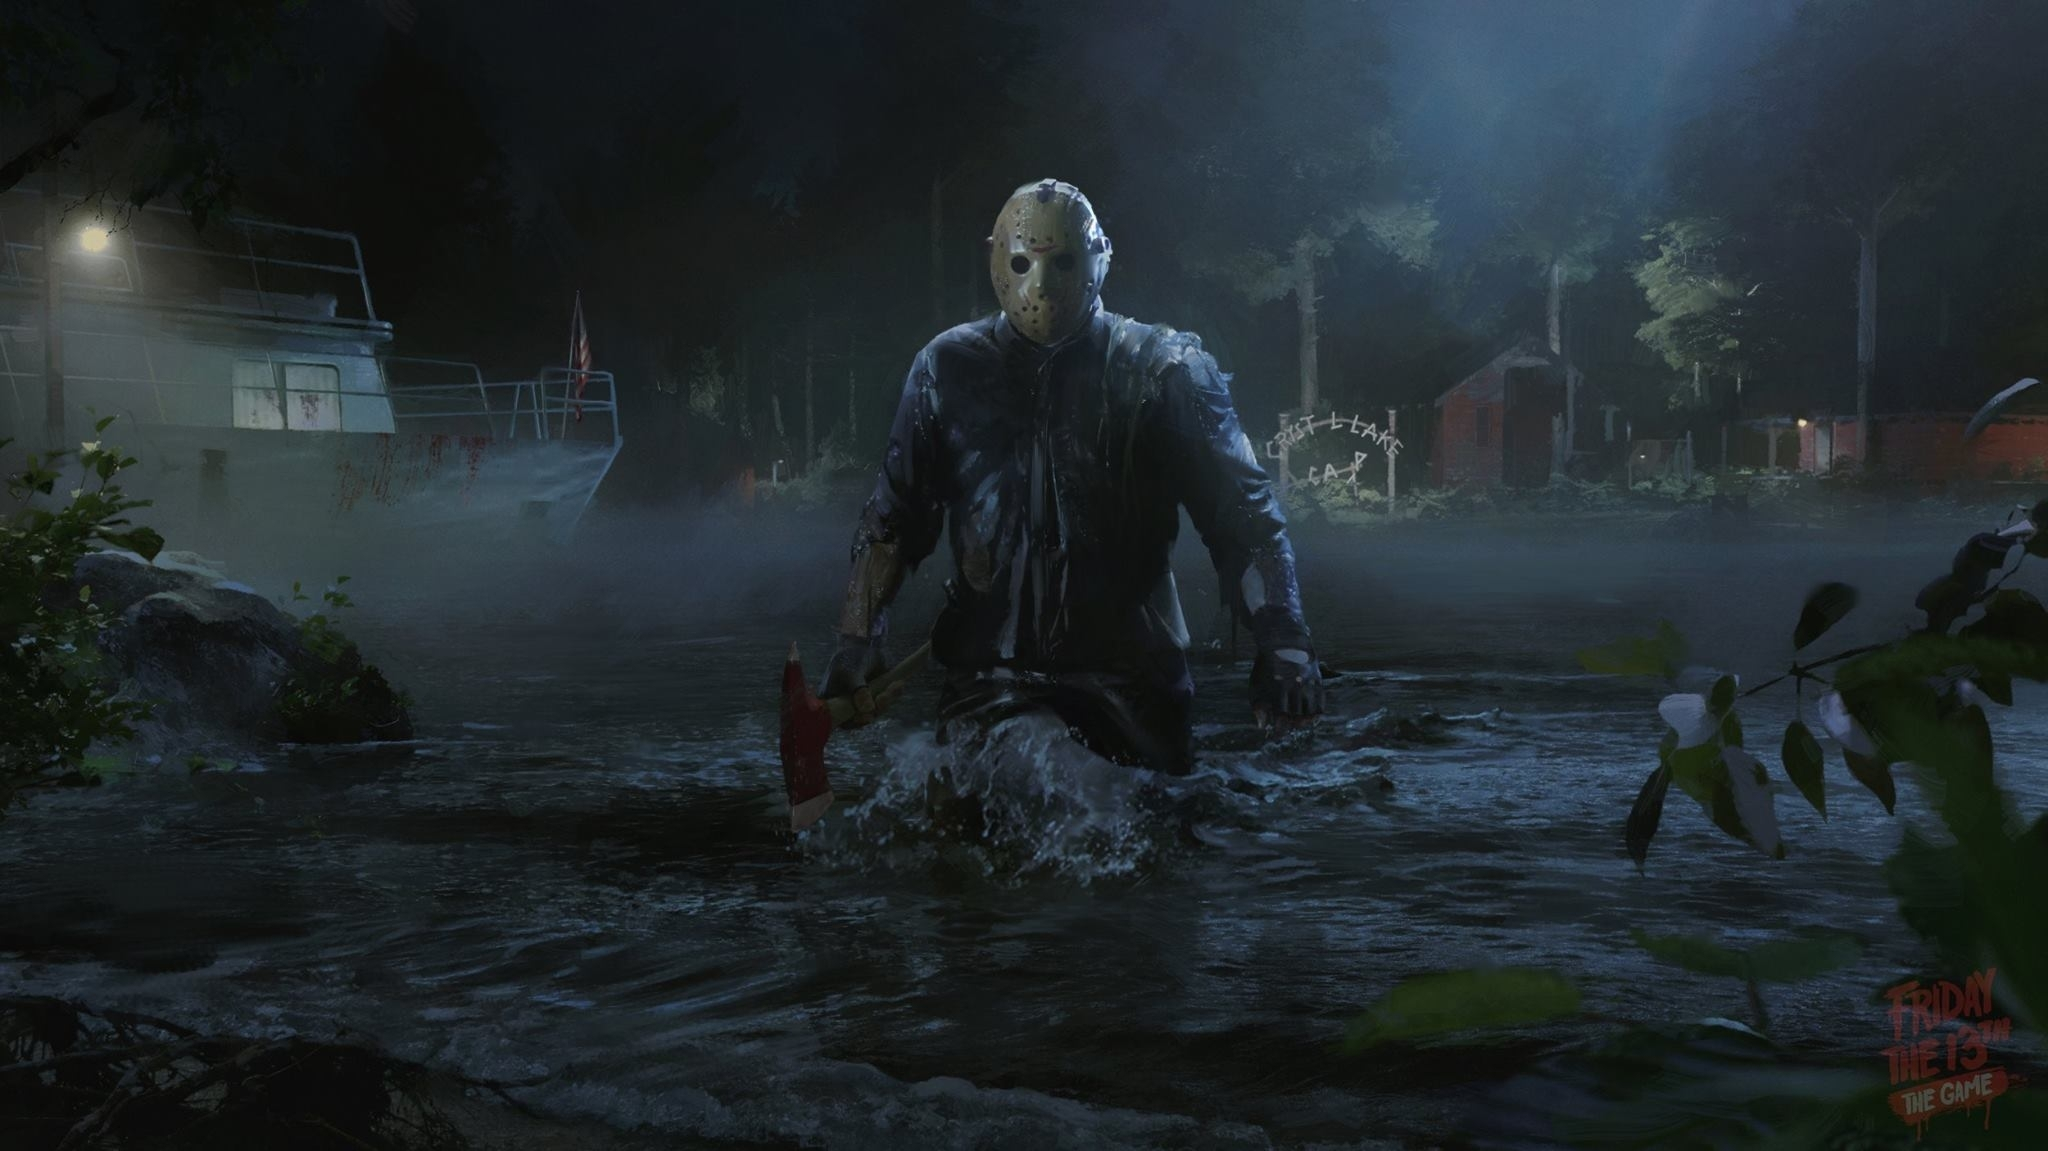 friday the 13th: the game full hd wallpaper and background image